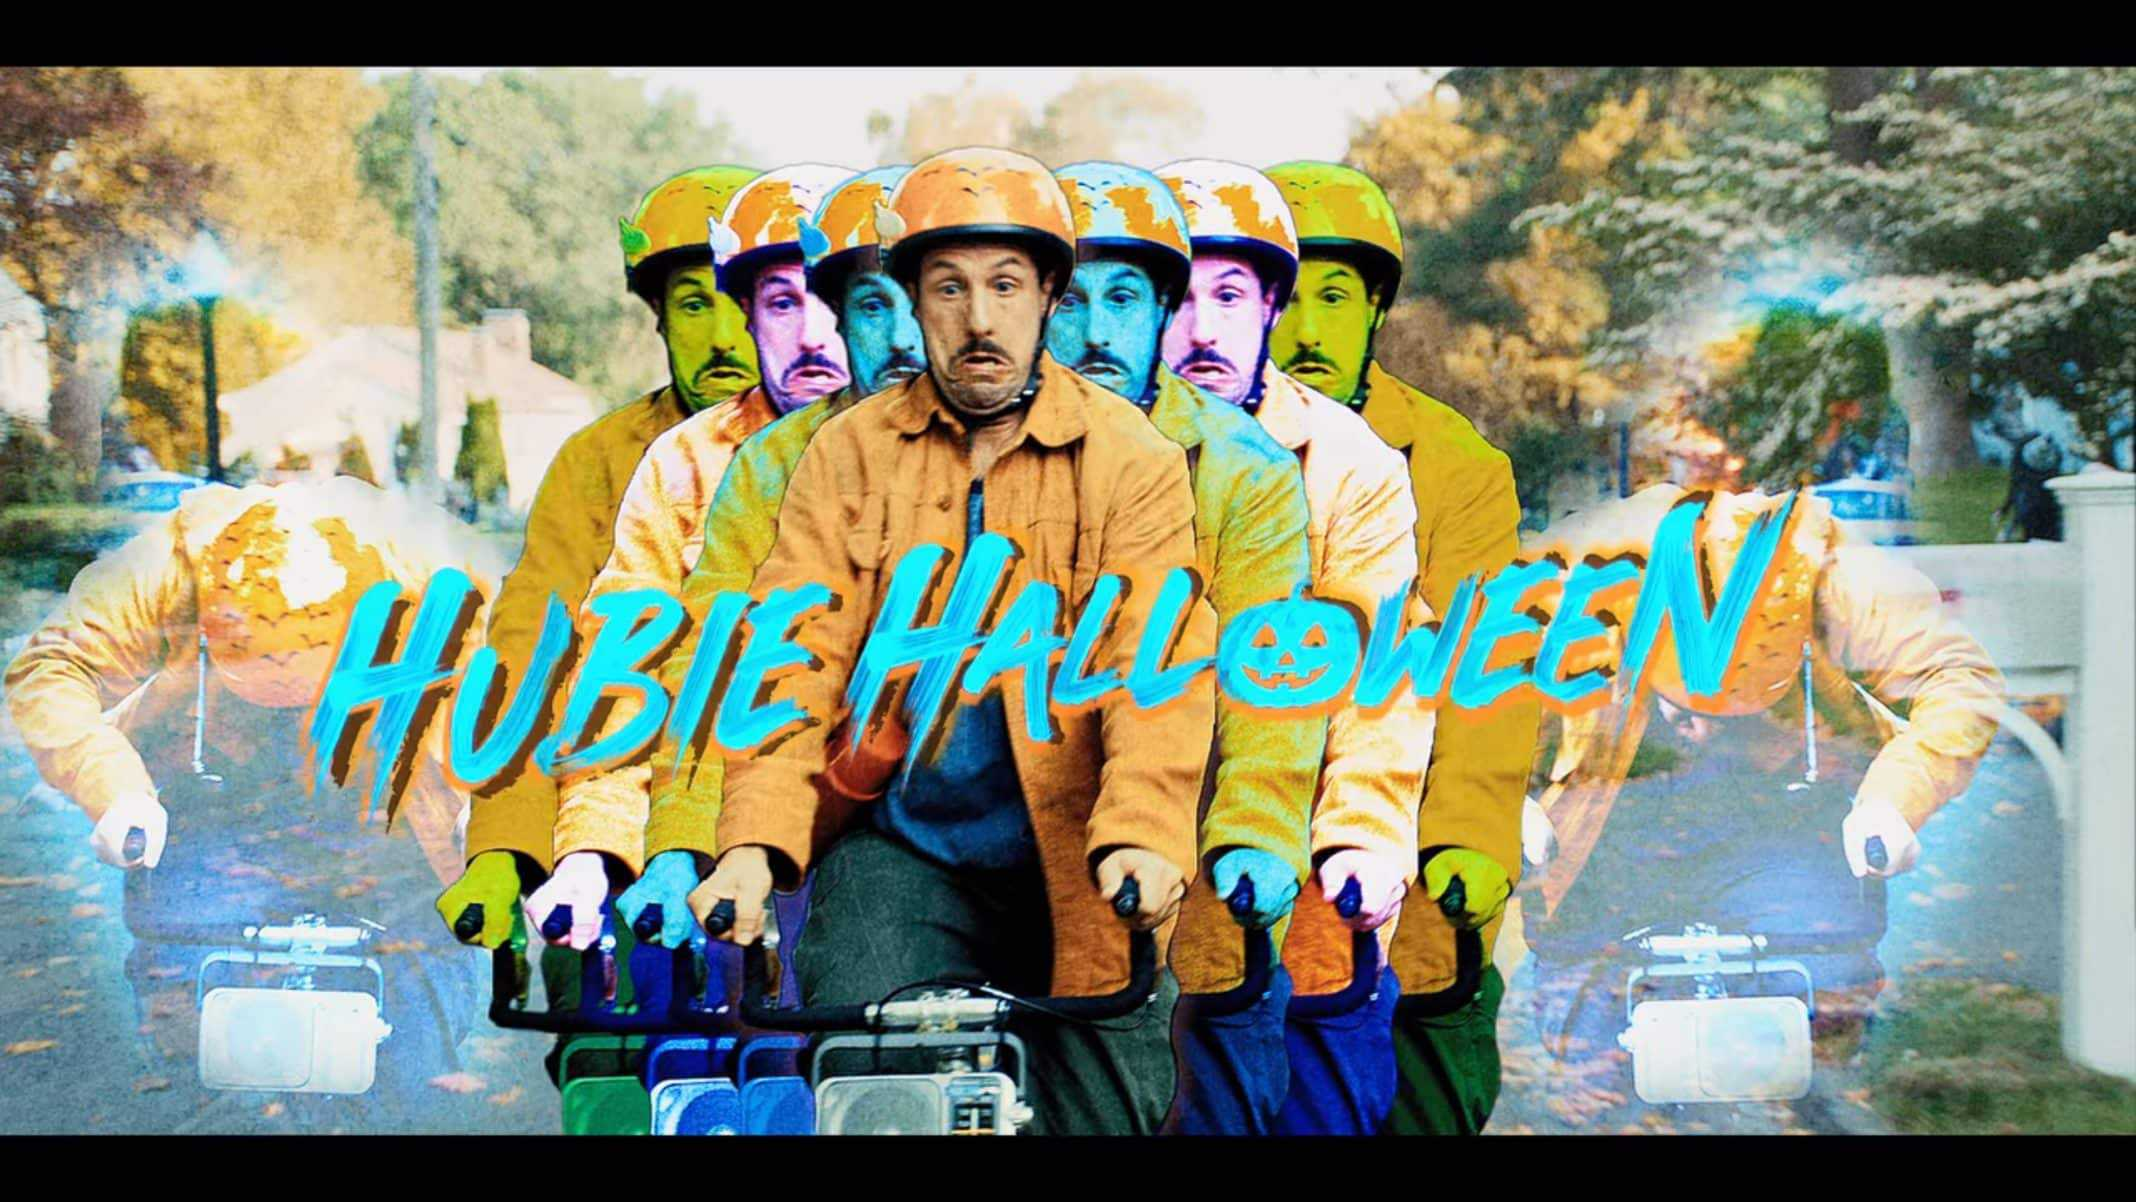 Halloween 2020 Review With Spoilers Little Boy Hubie Halloween (2020)   Review/Summary (with Spoilers)